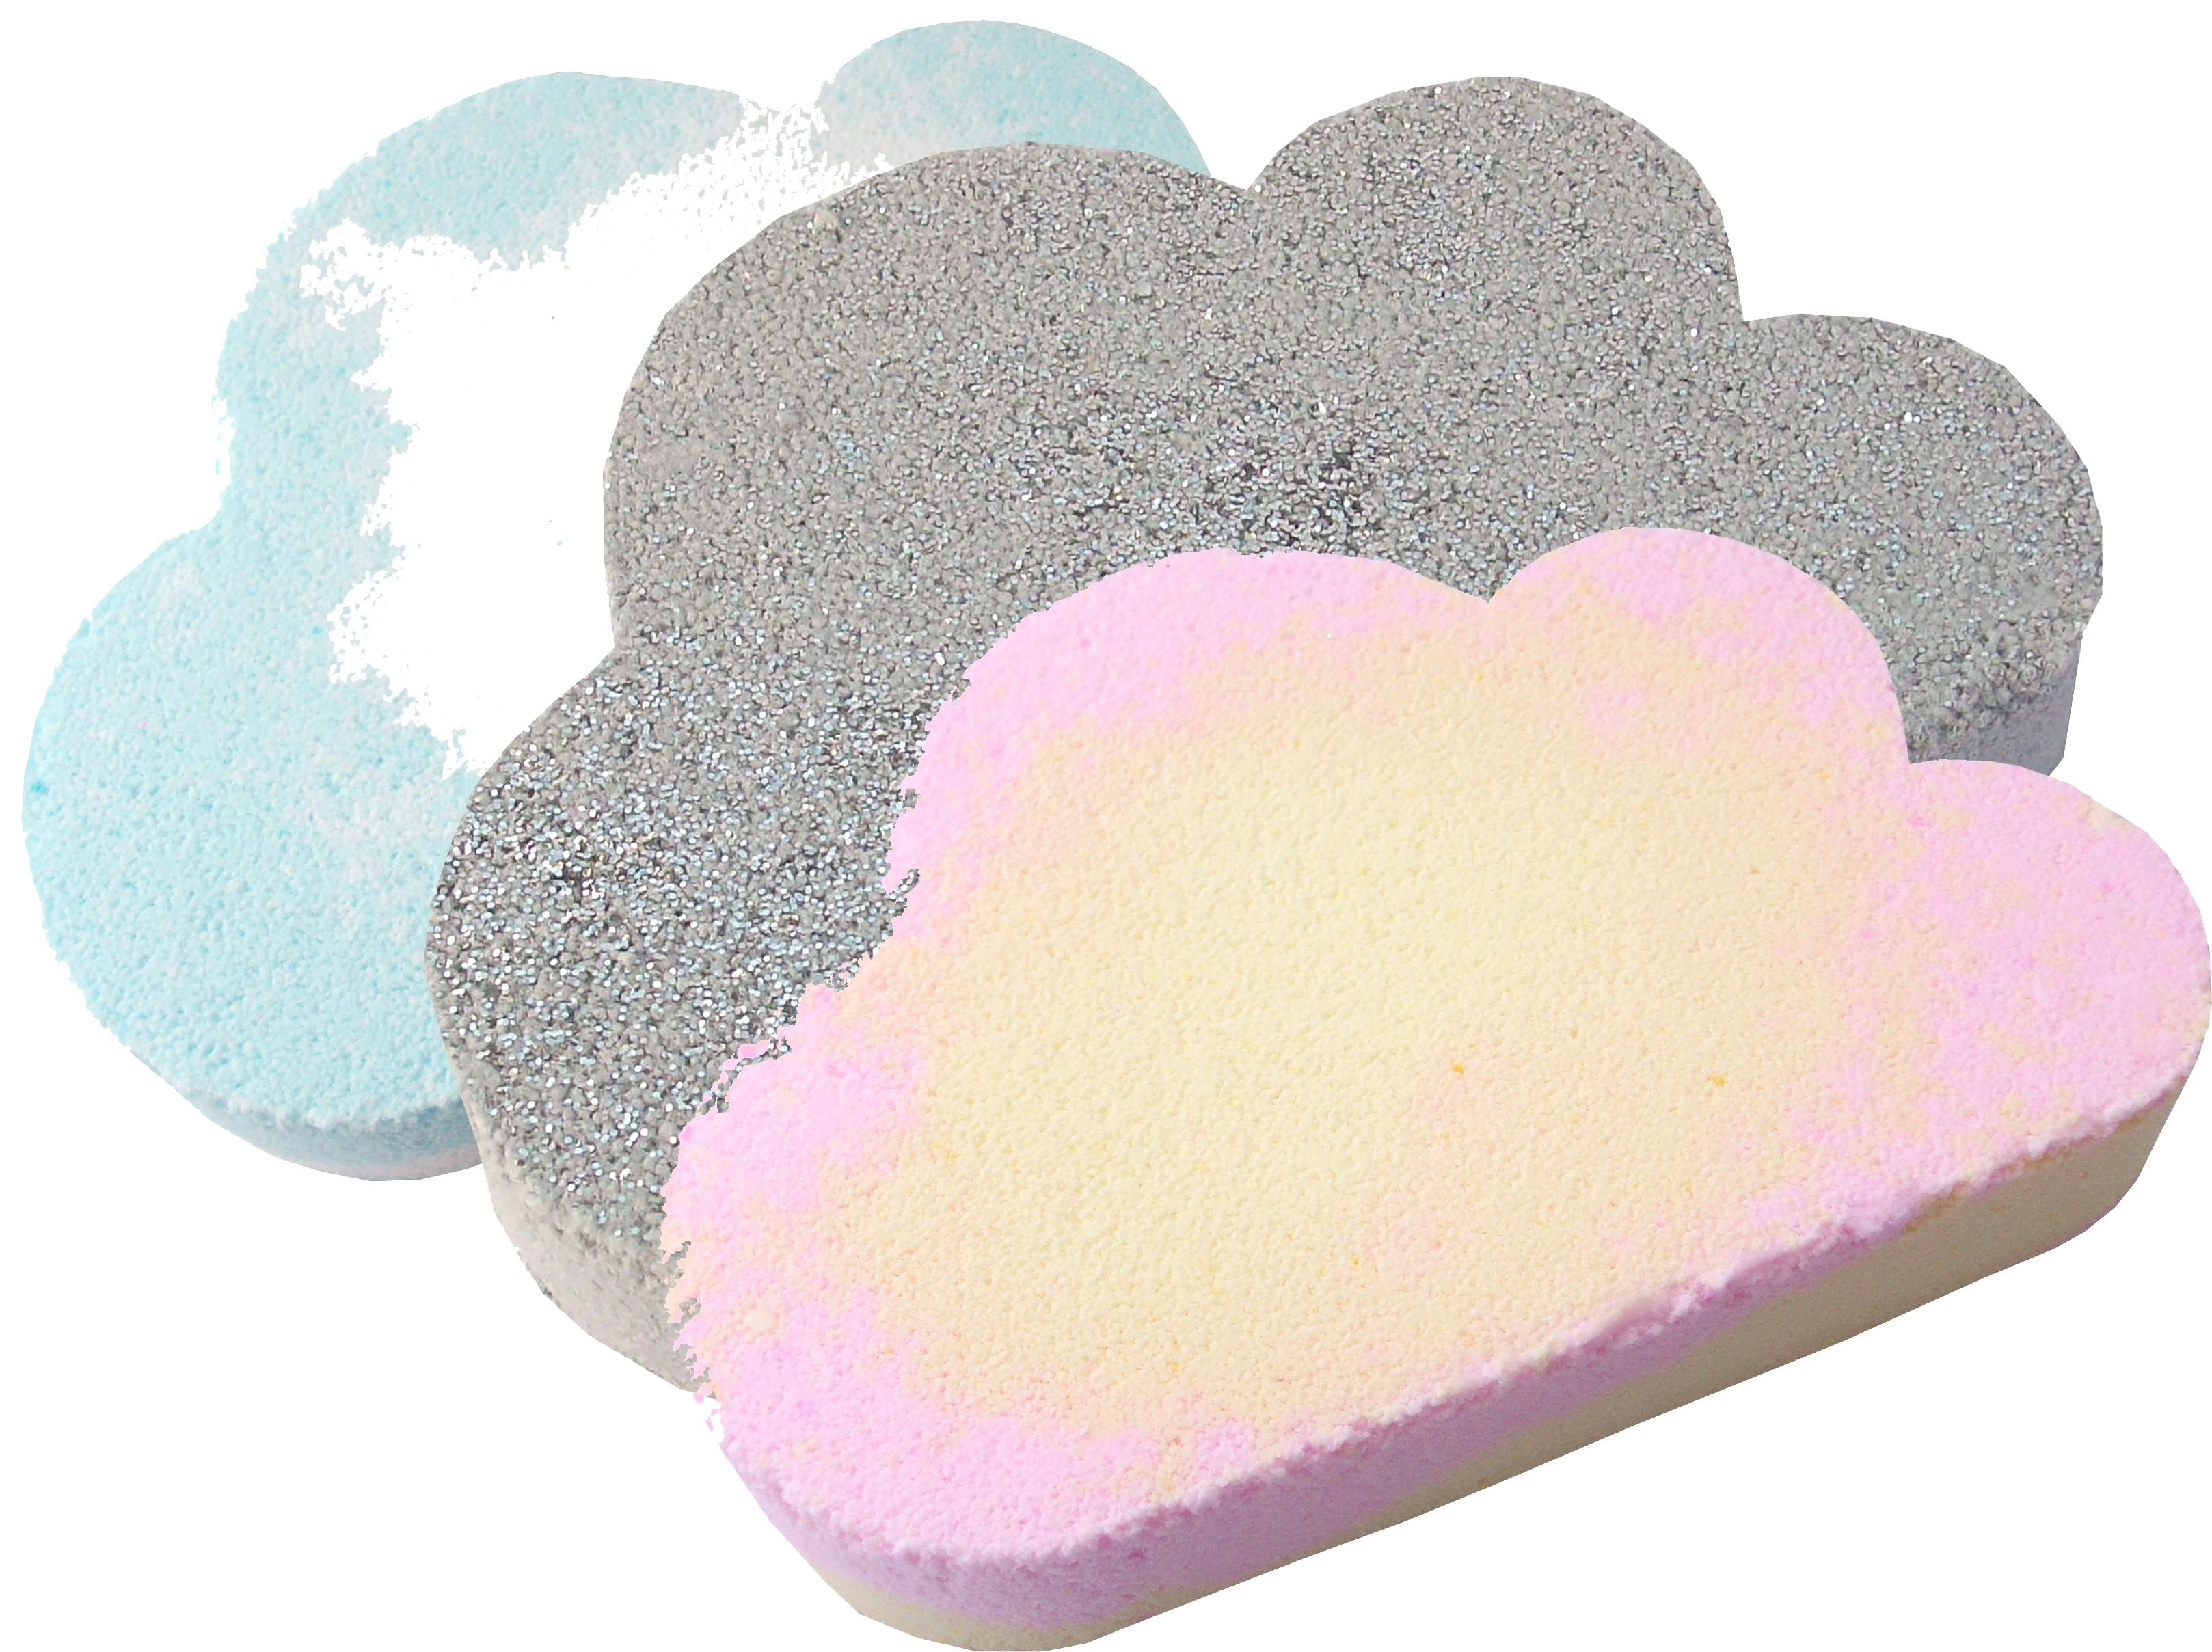 Cloud bath bombs